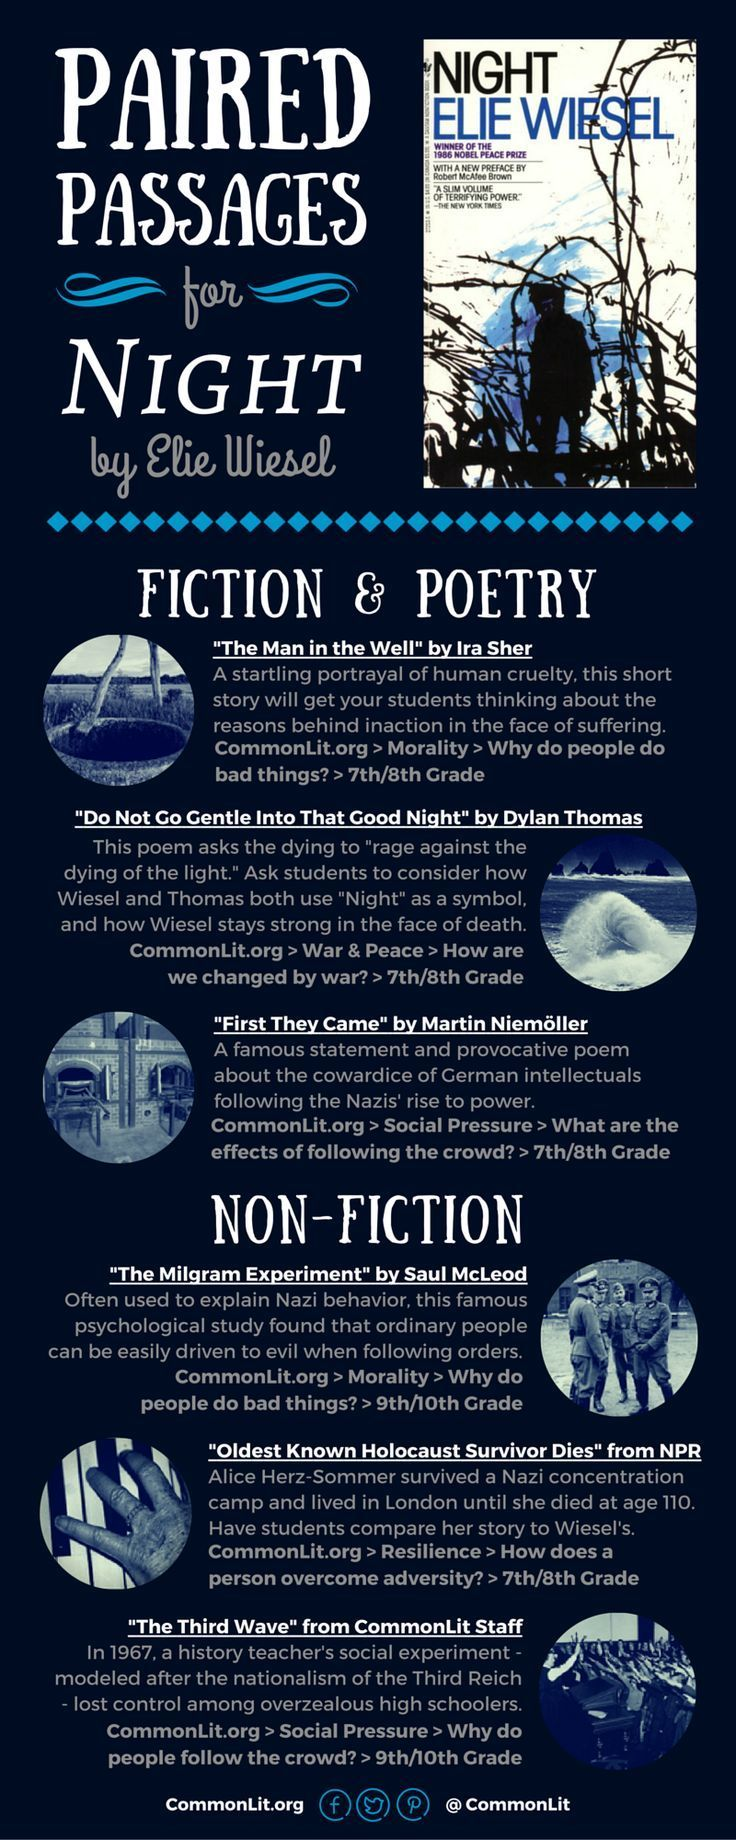 42 best teaching night images on pinterest teaching ideas high teaching night by elie wiesel use these paired passage suggestions to get your students thinking biocorpaavc Images